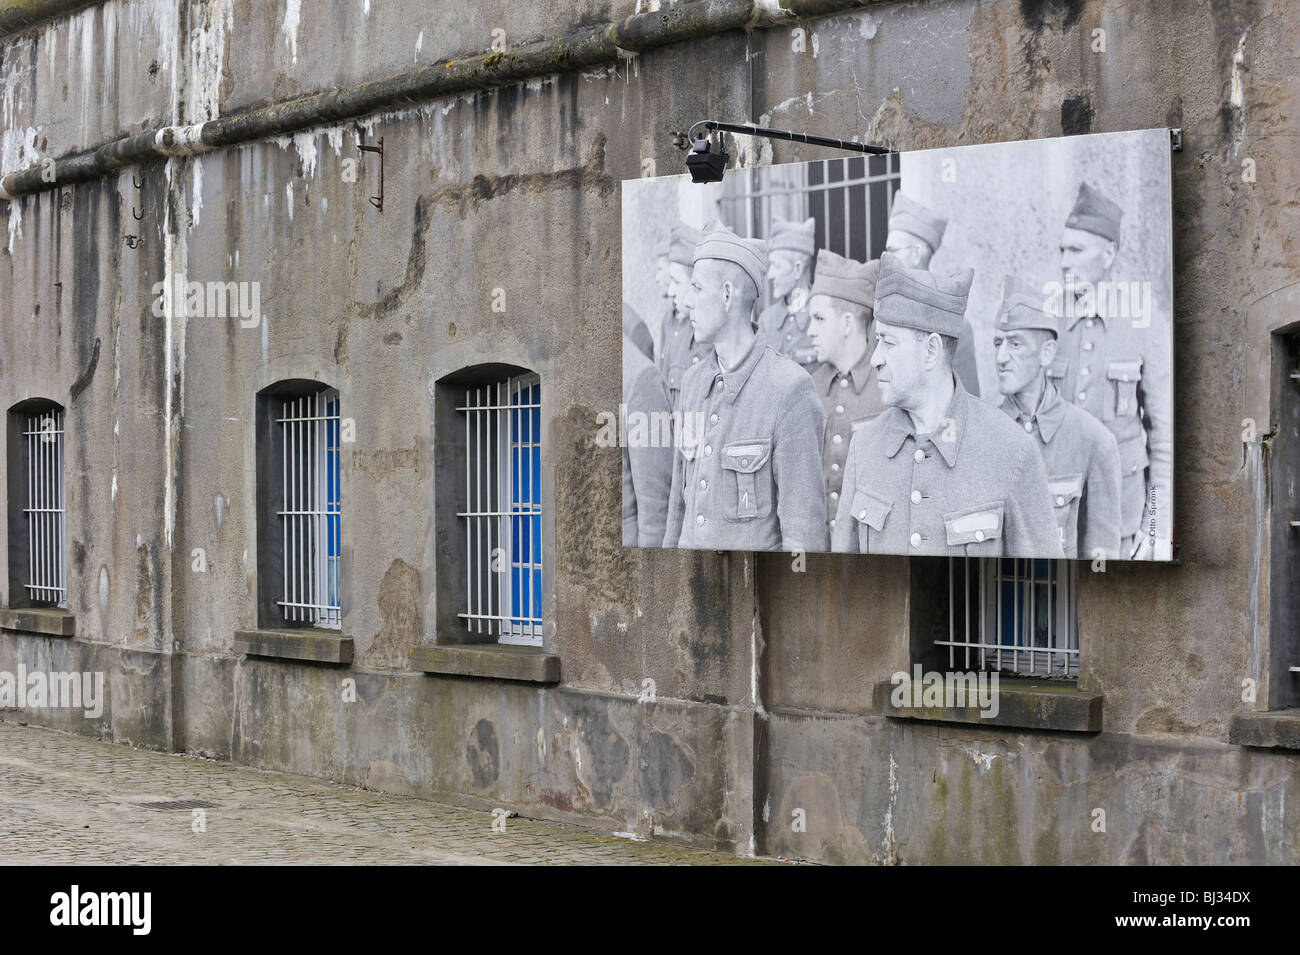 Picture of WW2 political prisoners at Fort Breendonk, a second World War Two concentration camp near Antwerp, Belgium - Stock Image